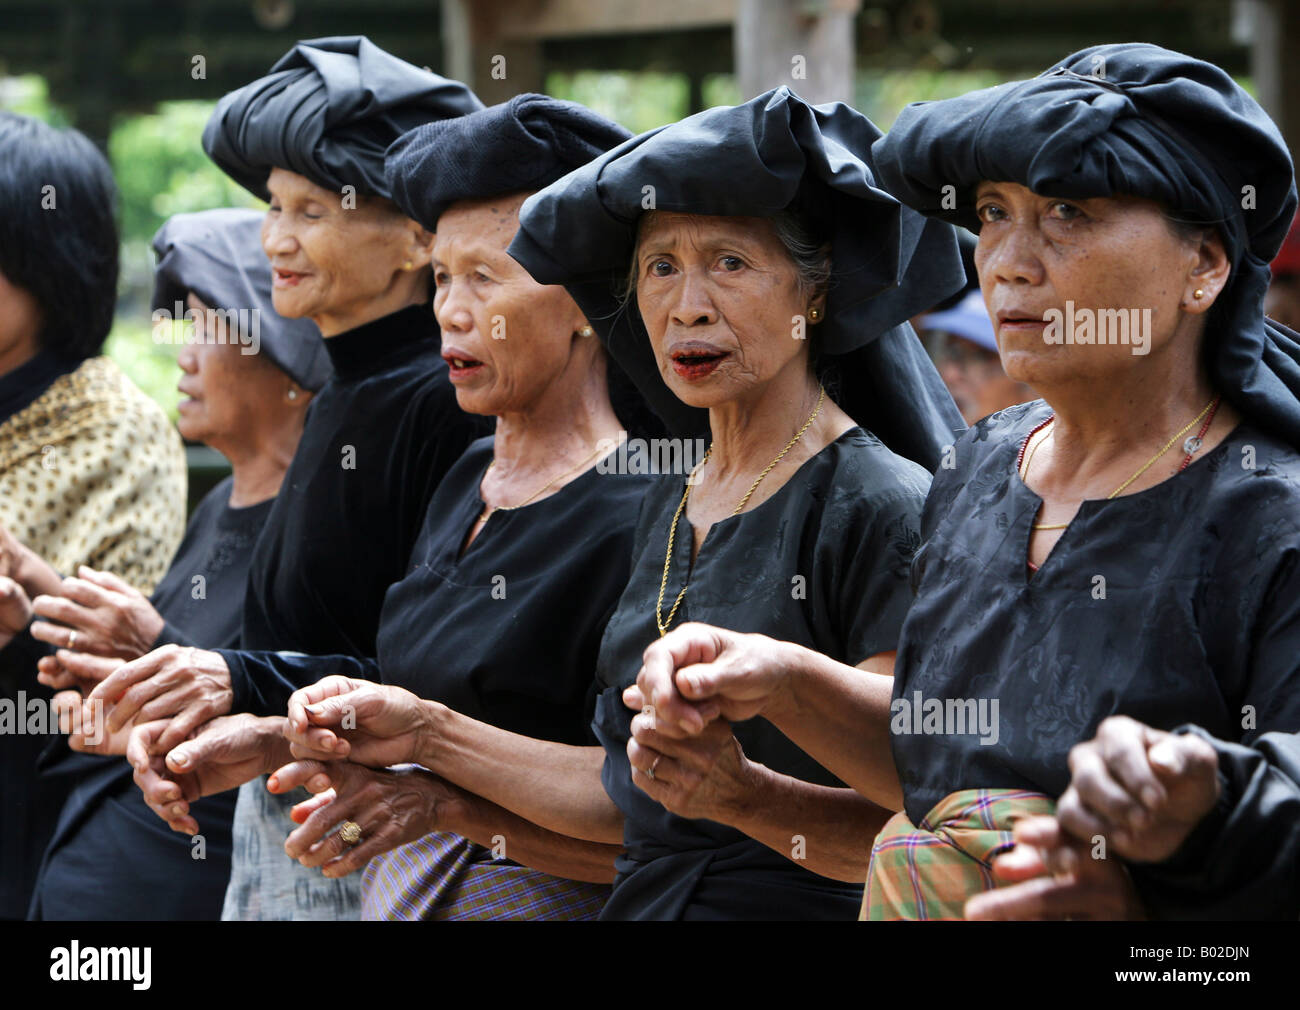 Indonesia Sulawesi Tana Toraja: traditional funeral. Family members, relatives and friends mourning in black clothes - Stock Image